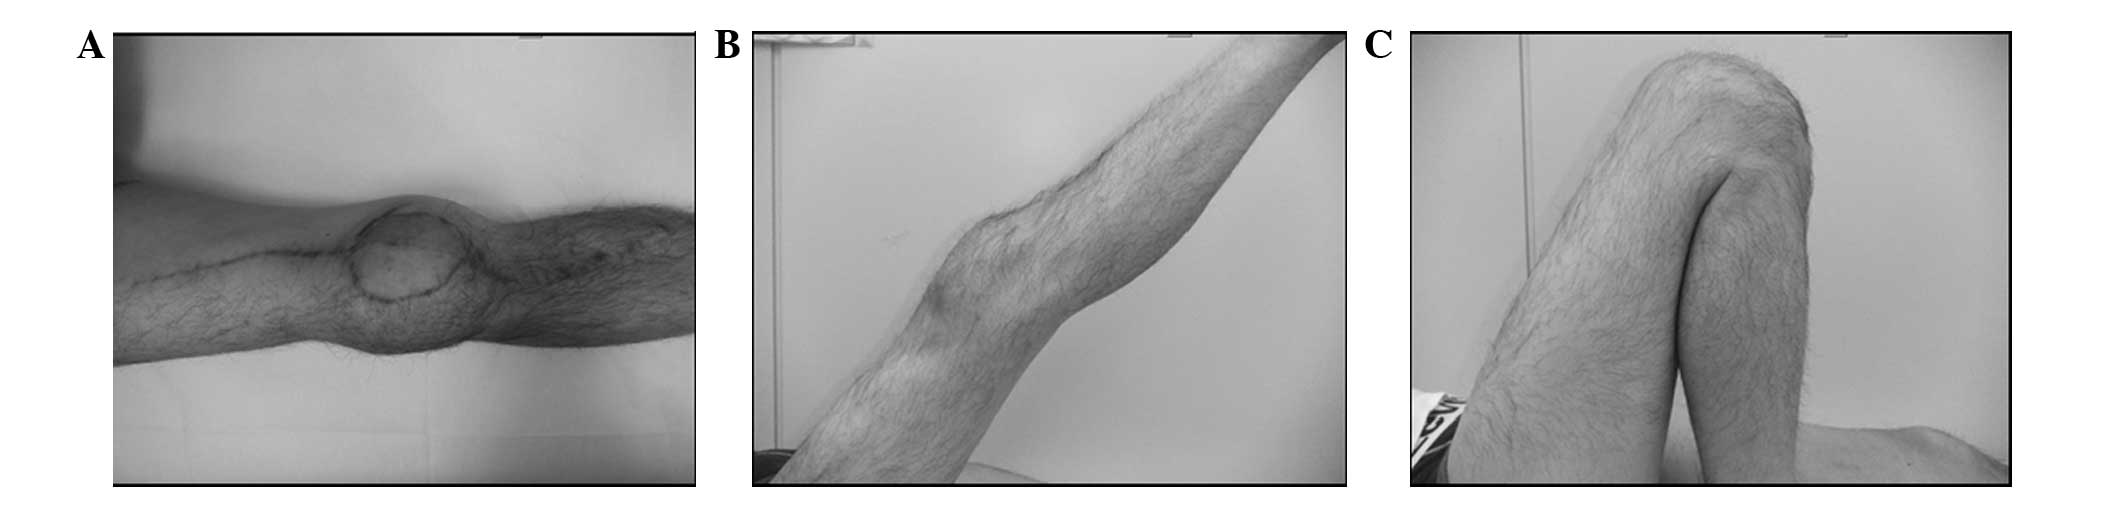 Functional Reconstruction Of The Knee Extension Mechanism Following